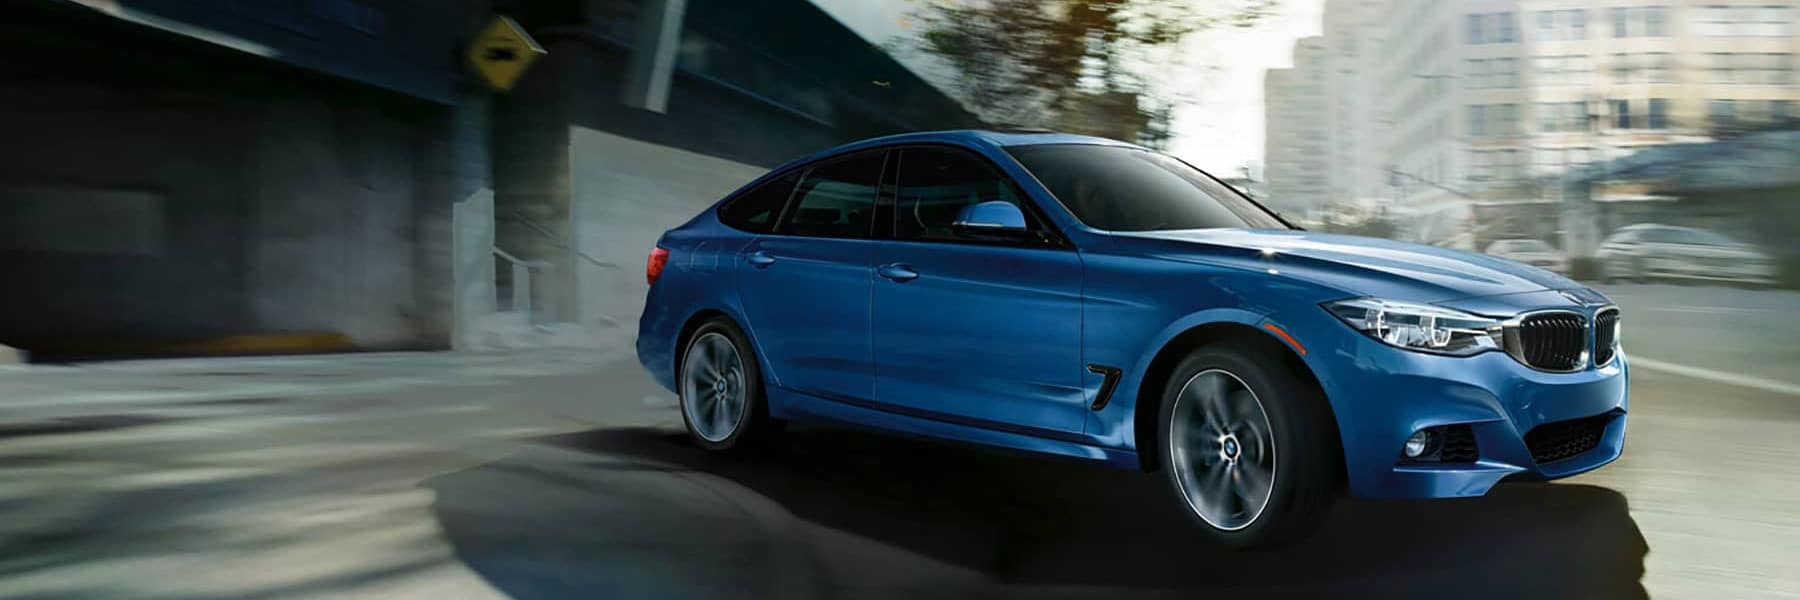 Bmw And Used Car Dealer In El Paso Bmw Of El Paso